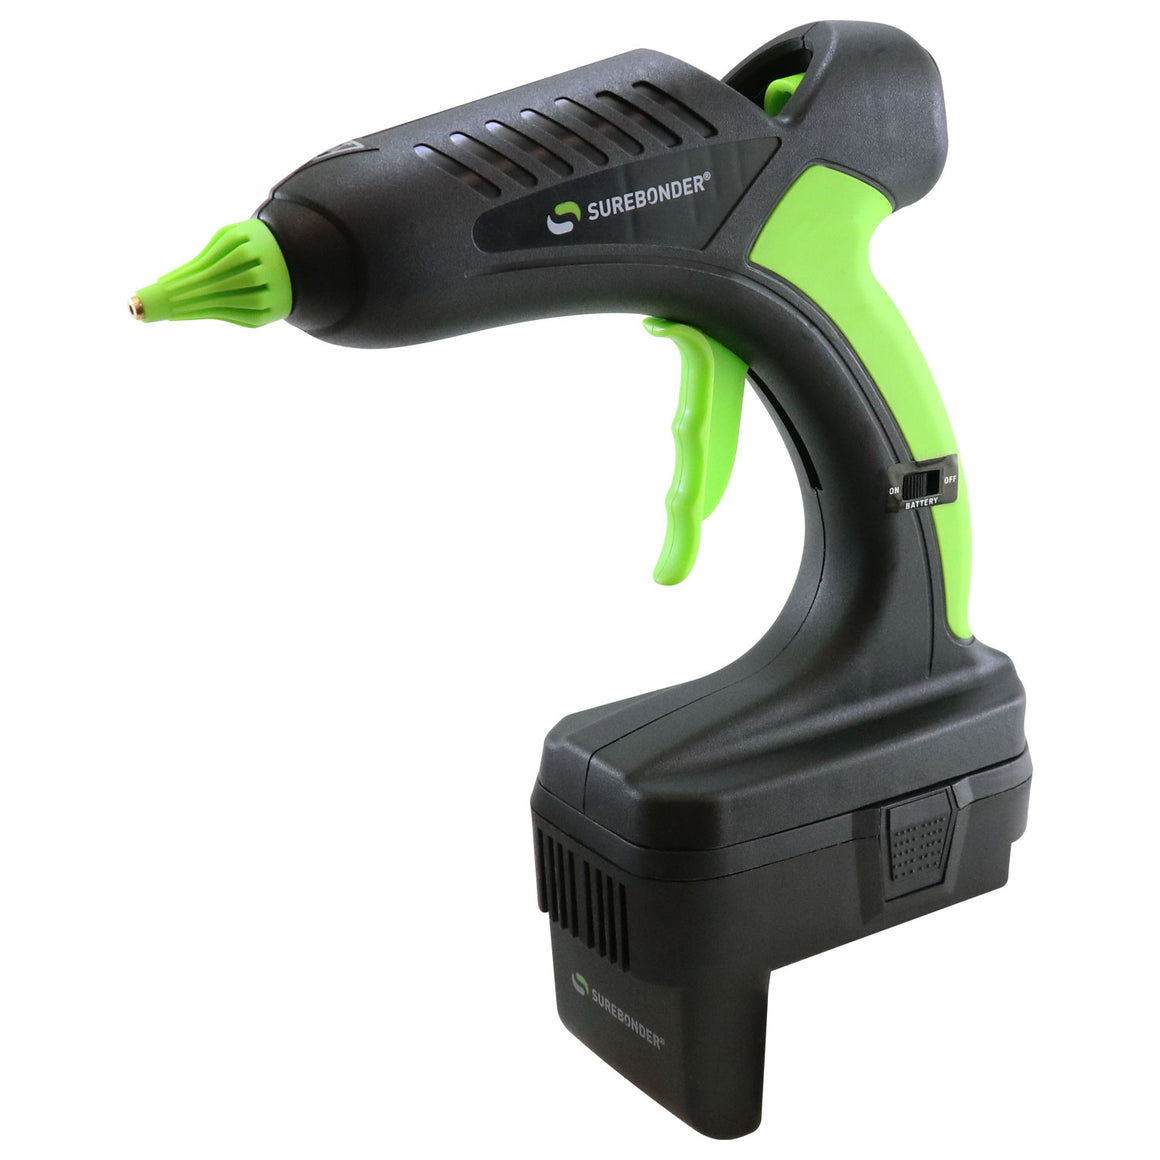 PRO2-60DEW 60 Watt 20 Volt Cordless Professional Heavy Duty Full Size Hot Glue Gun - Dewalt® Version